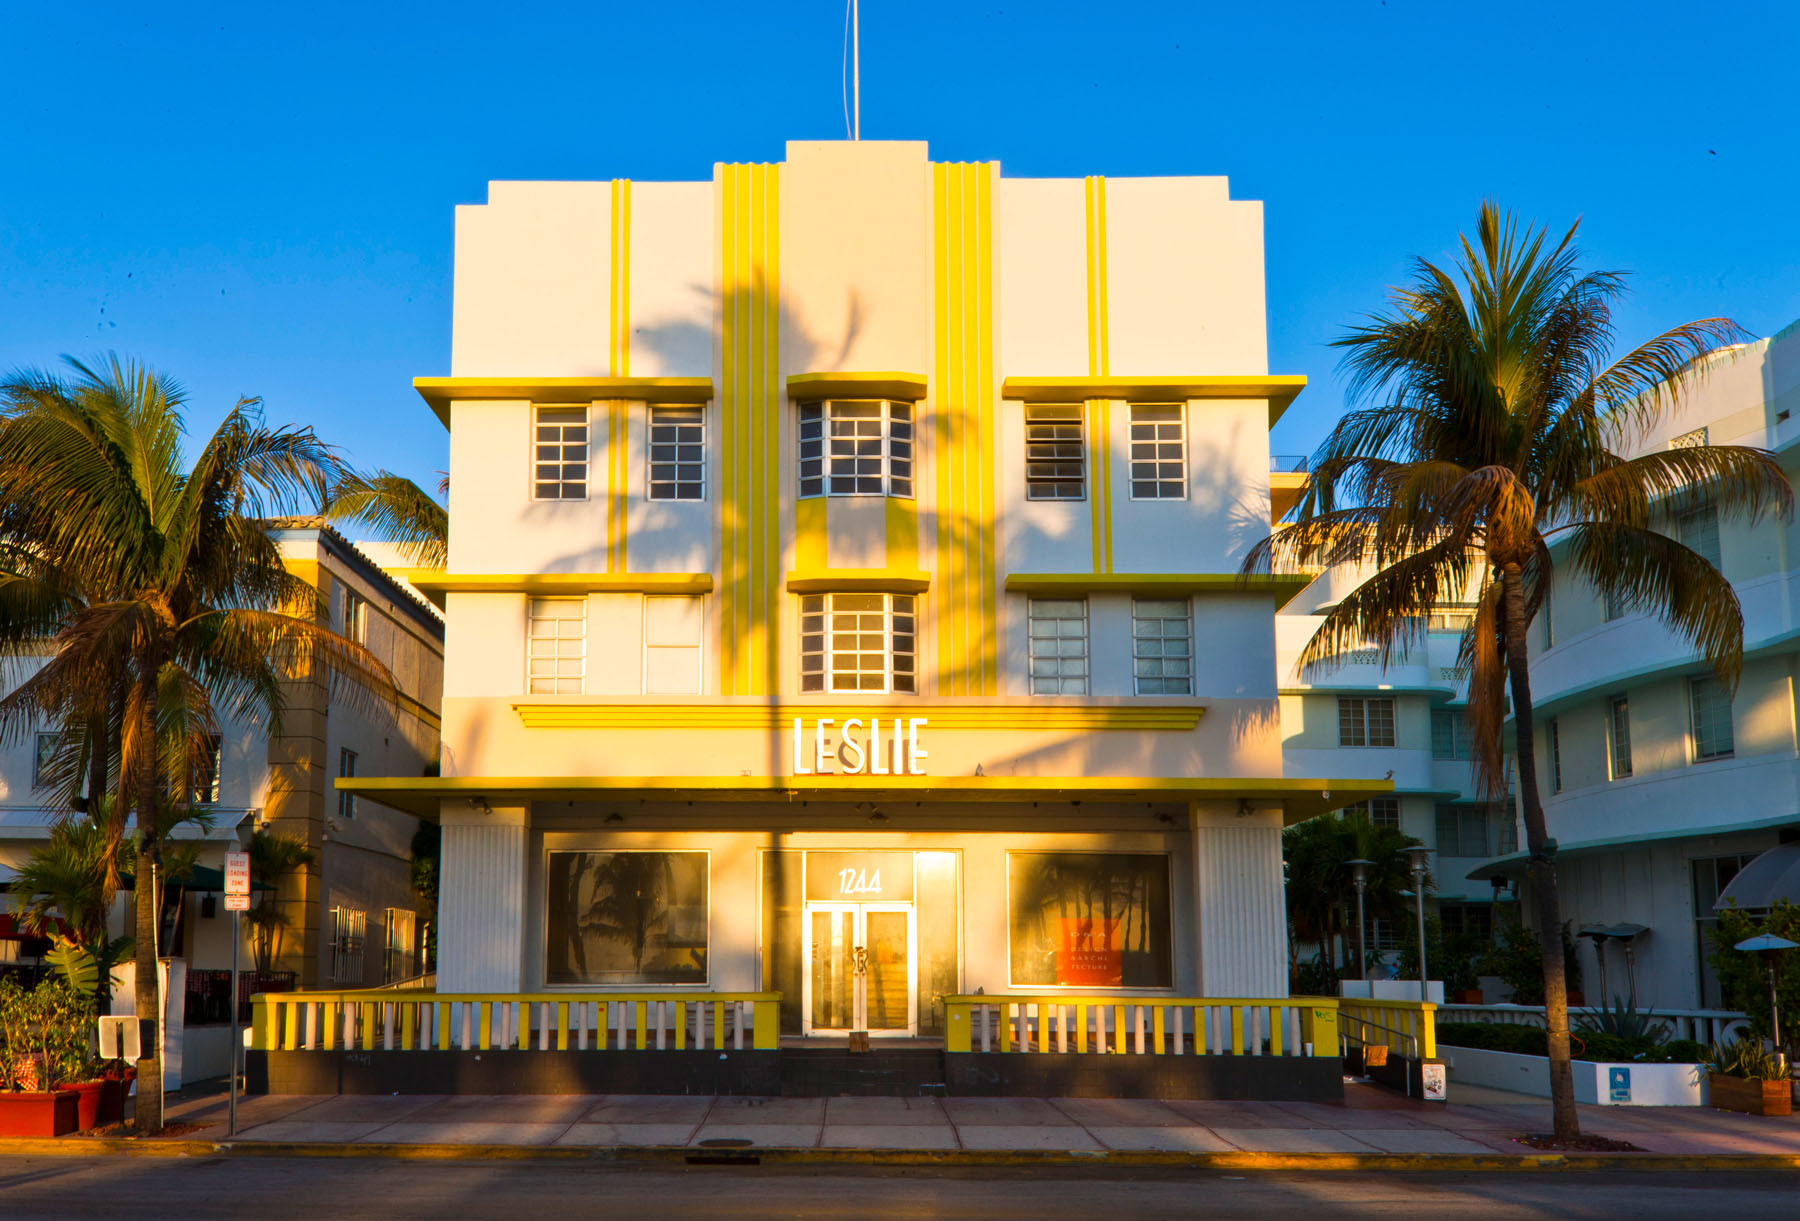 854_1miami_art_deco_25.jpg